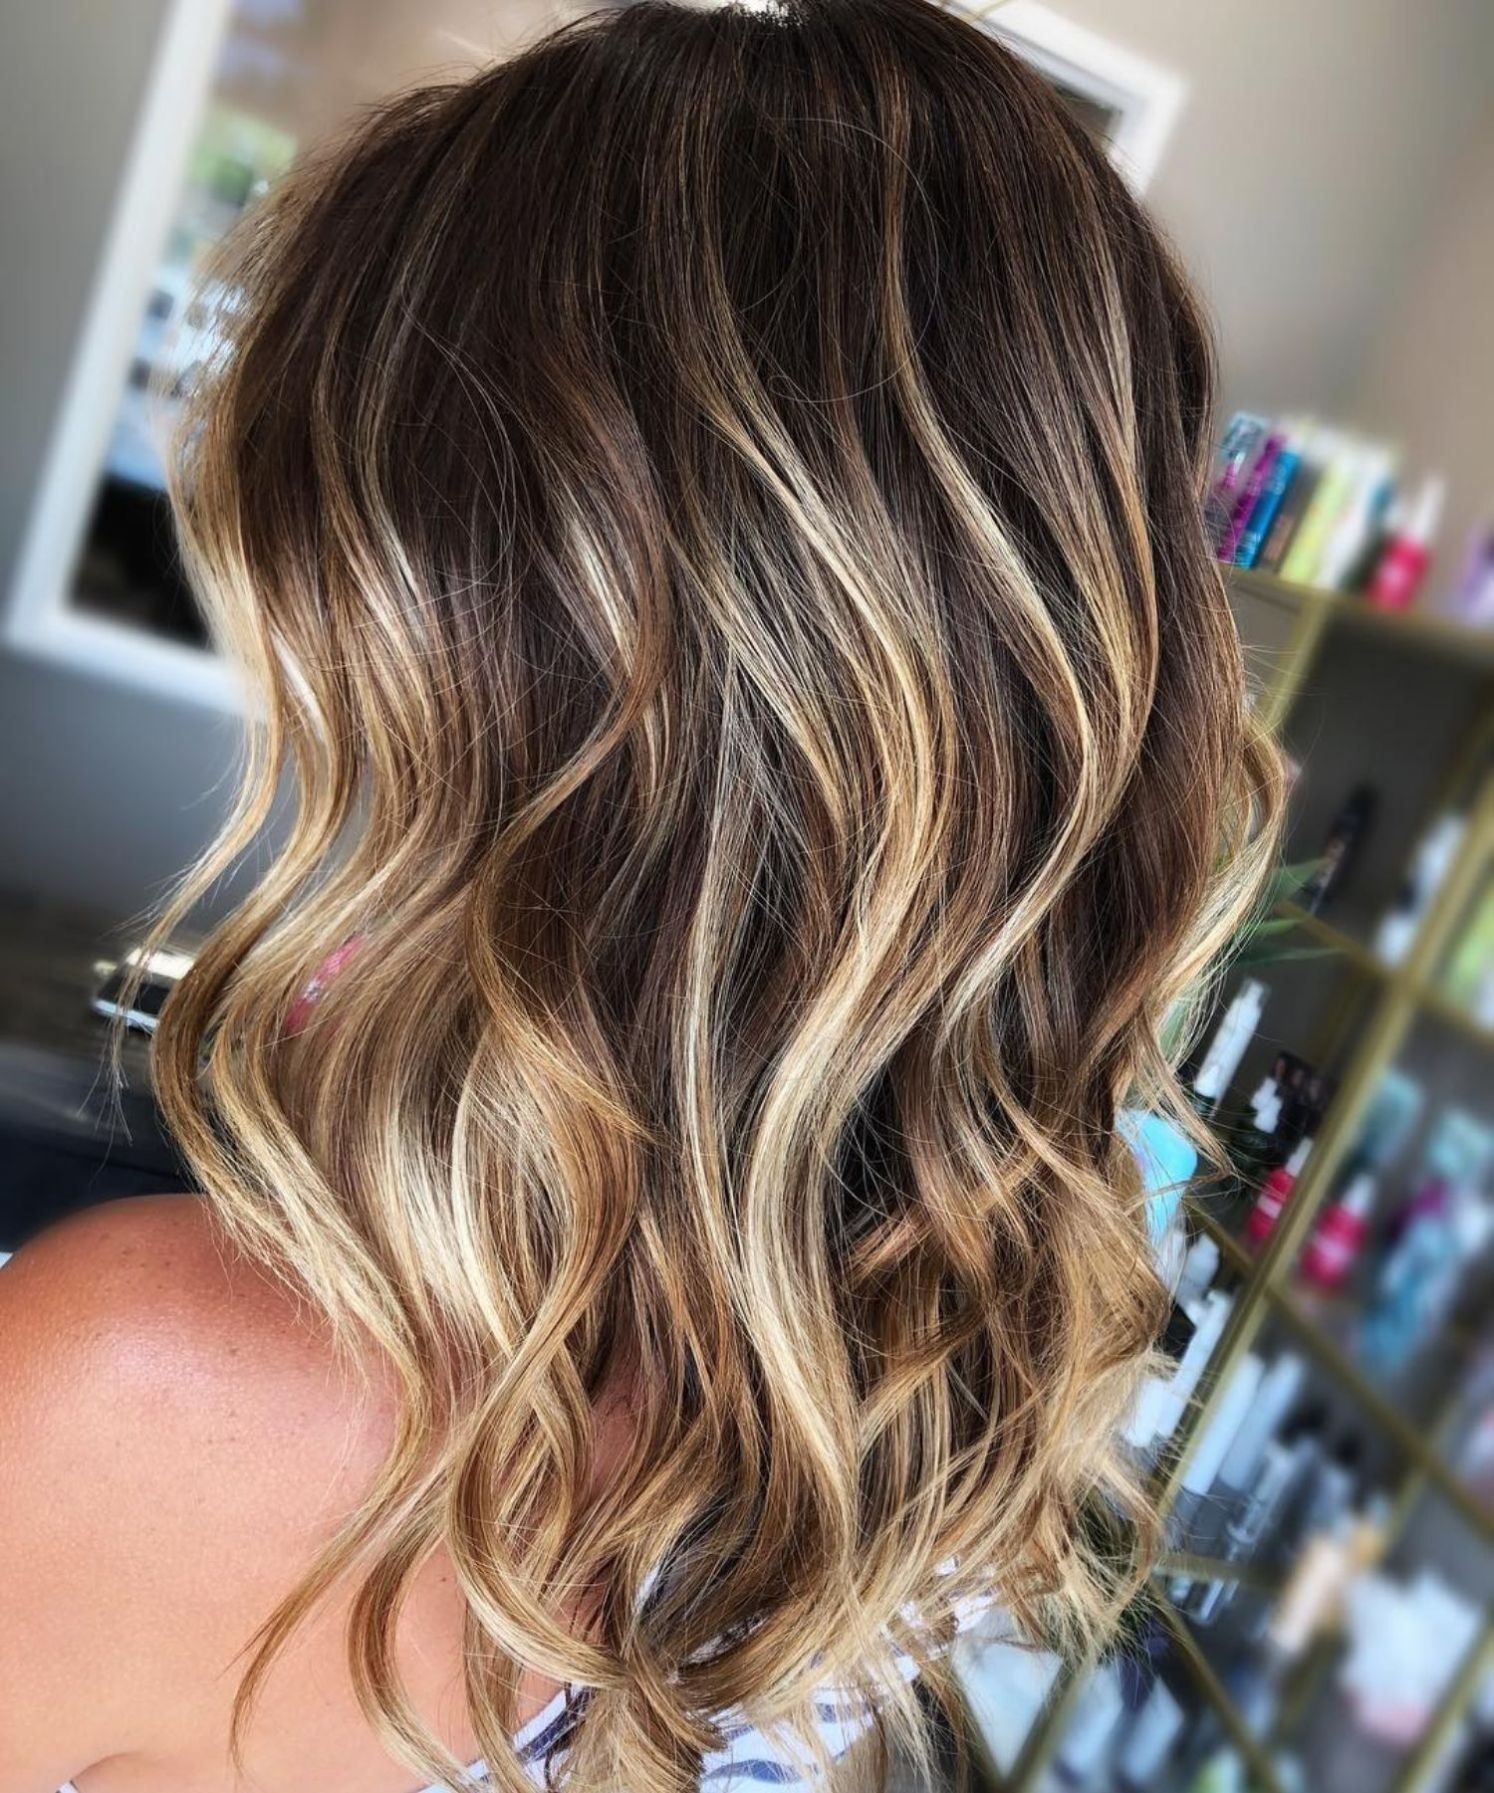 Dark Hair With Chocolate And Blonde Highlights Dark Blonde Hair Color Brown Blonde Hair Brunette Hair Color